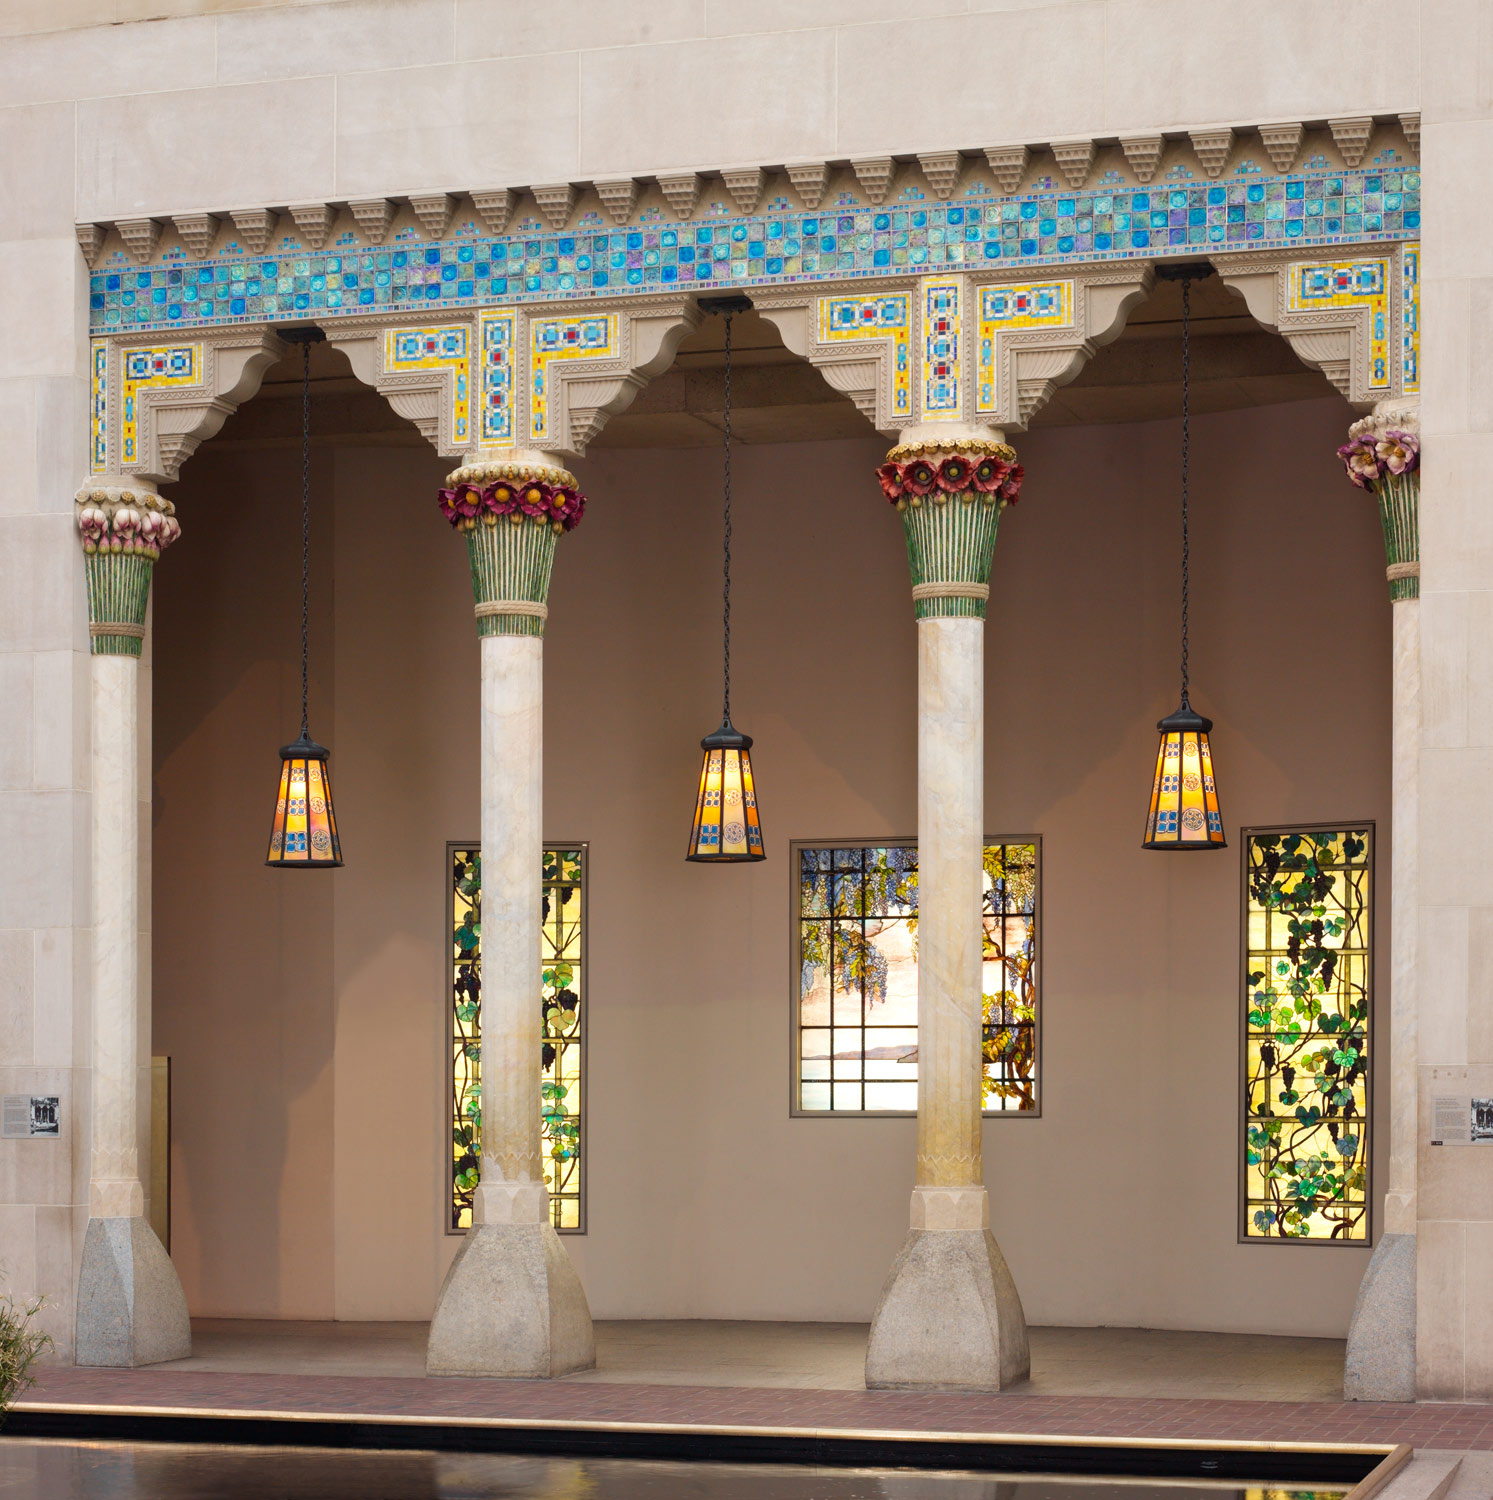 Architectural elements from laurelton hall  oyster bay  new york  designed by louis comfort tiffany  1905